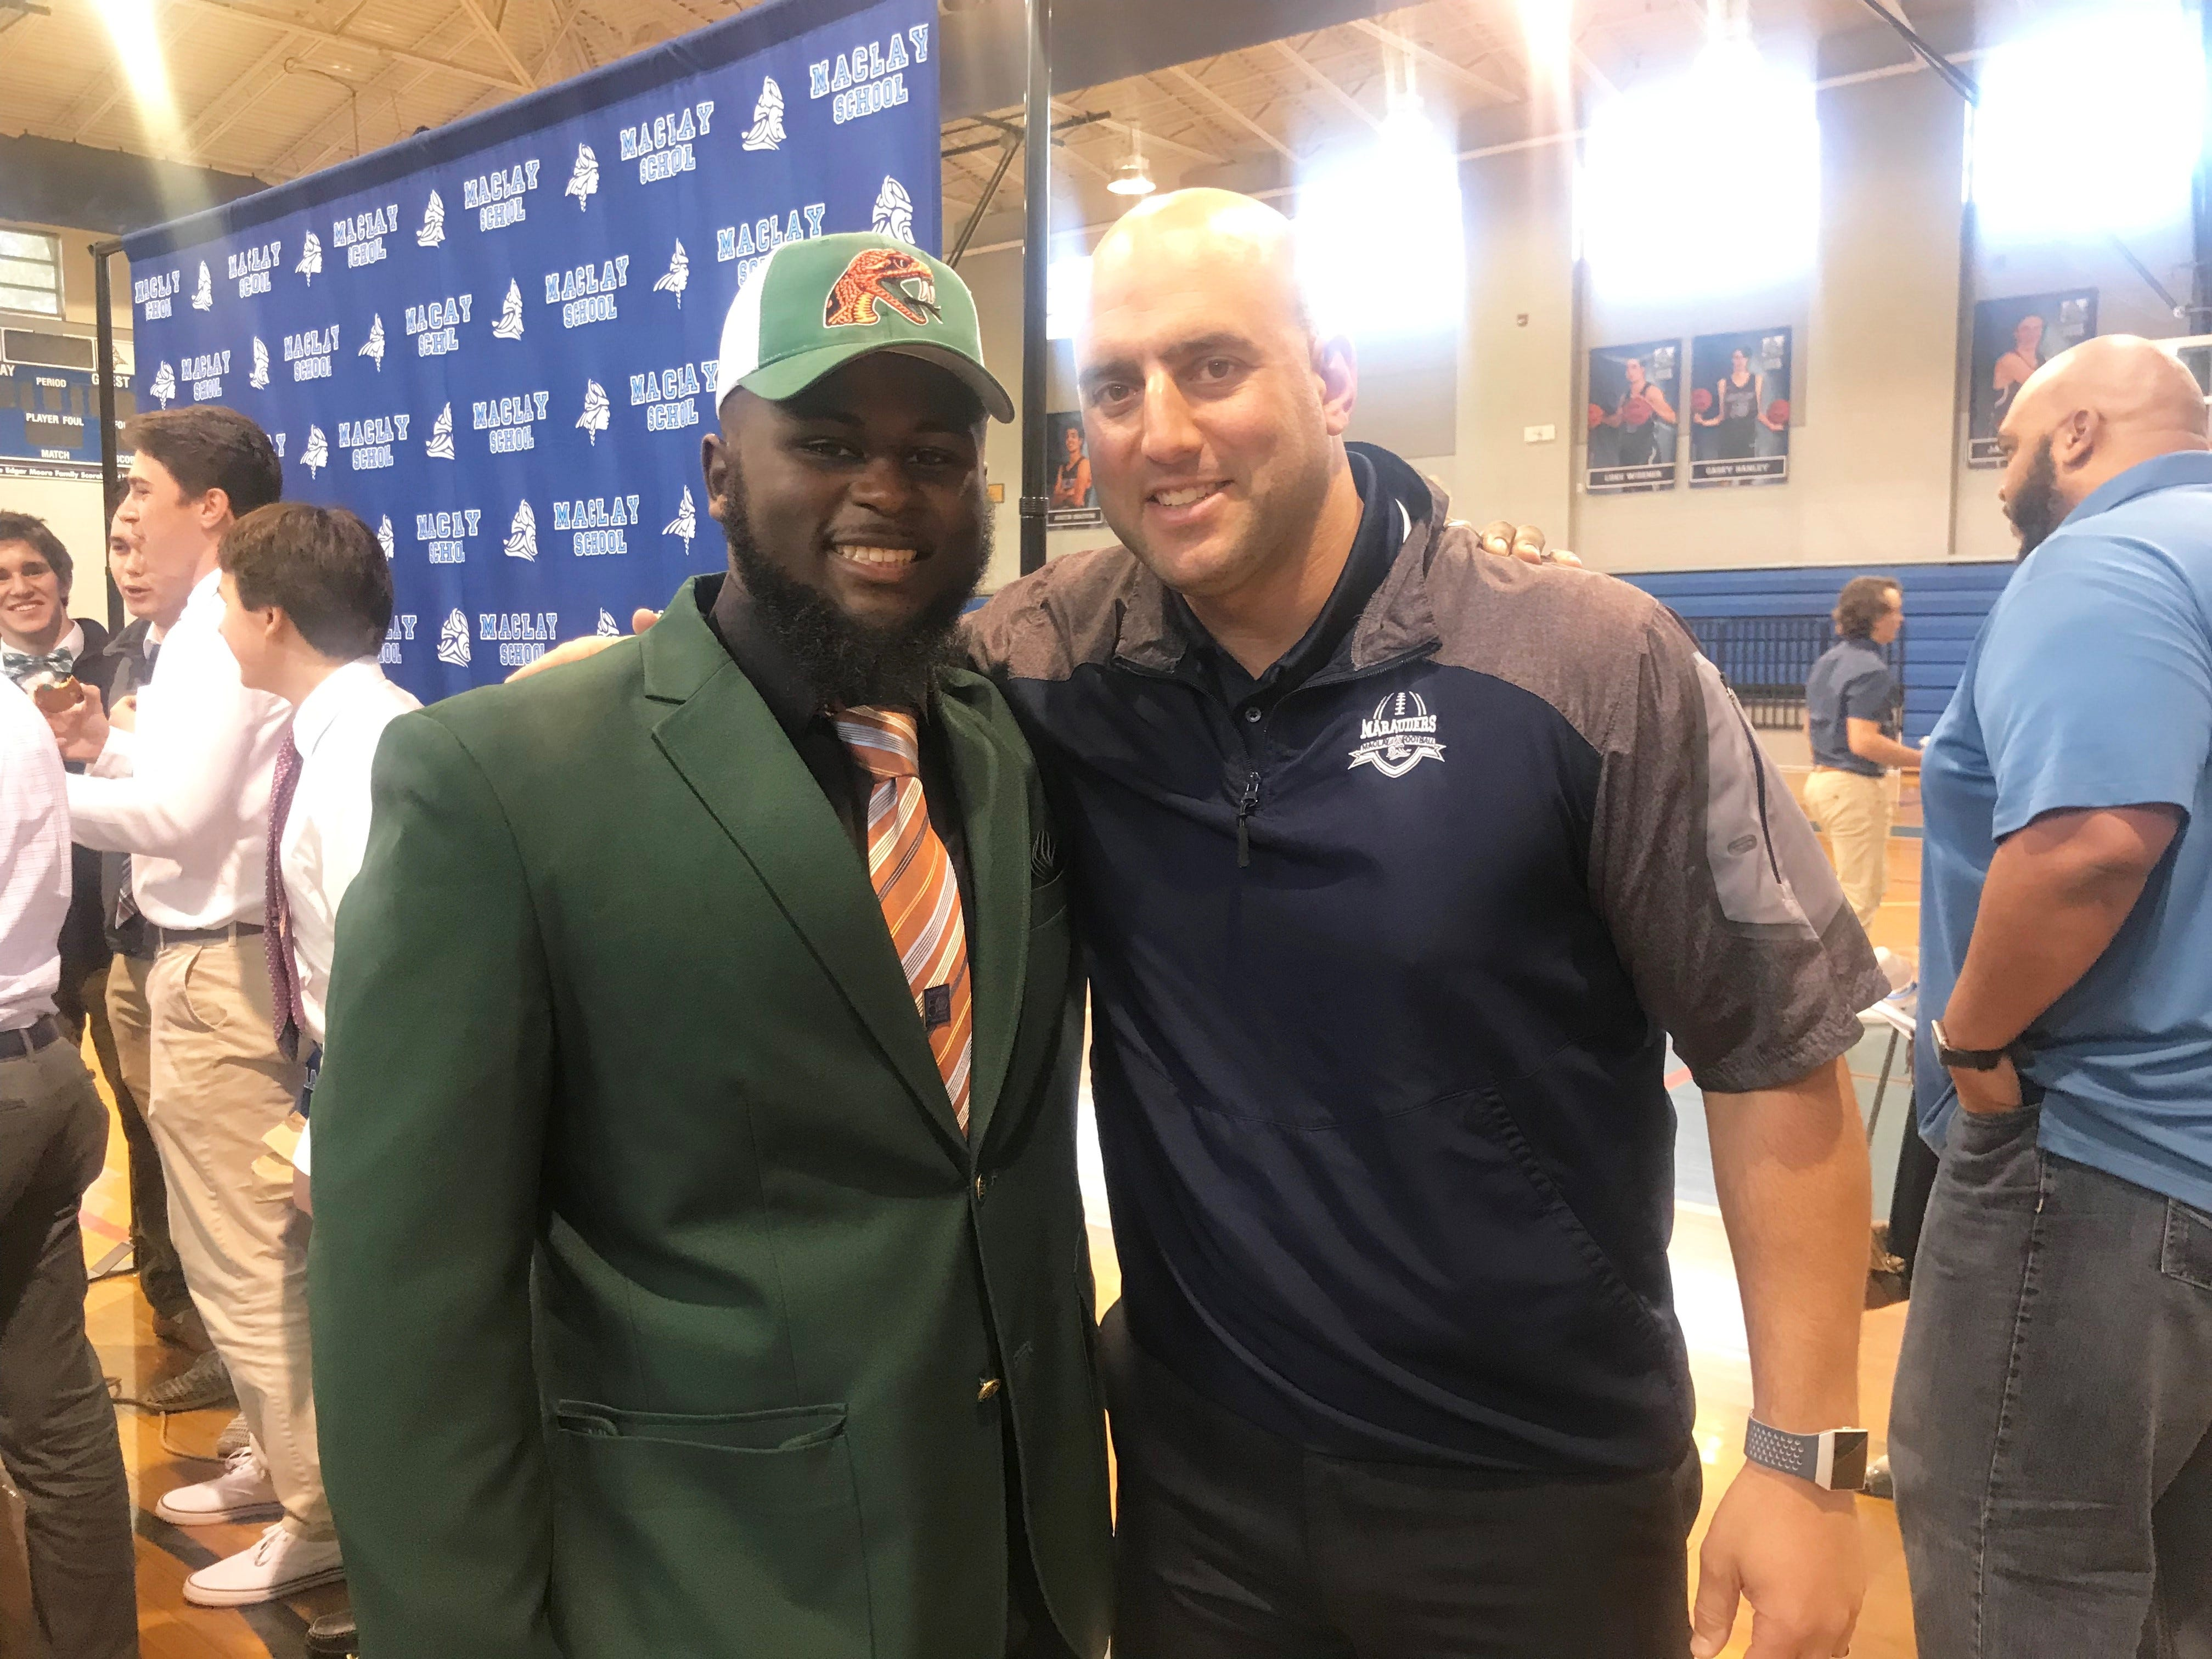 Maclay's Eljin Rhymes poses with head coach Lance Ramer after signing as a preferred walk-on at FAMU during a National Signing Day event on Feb. 6, 2019.